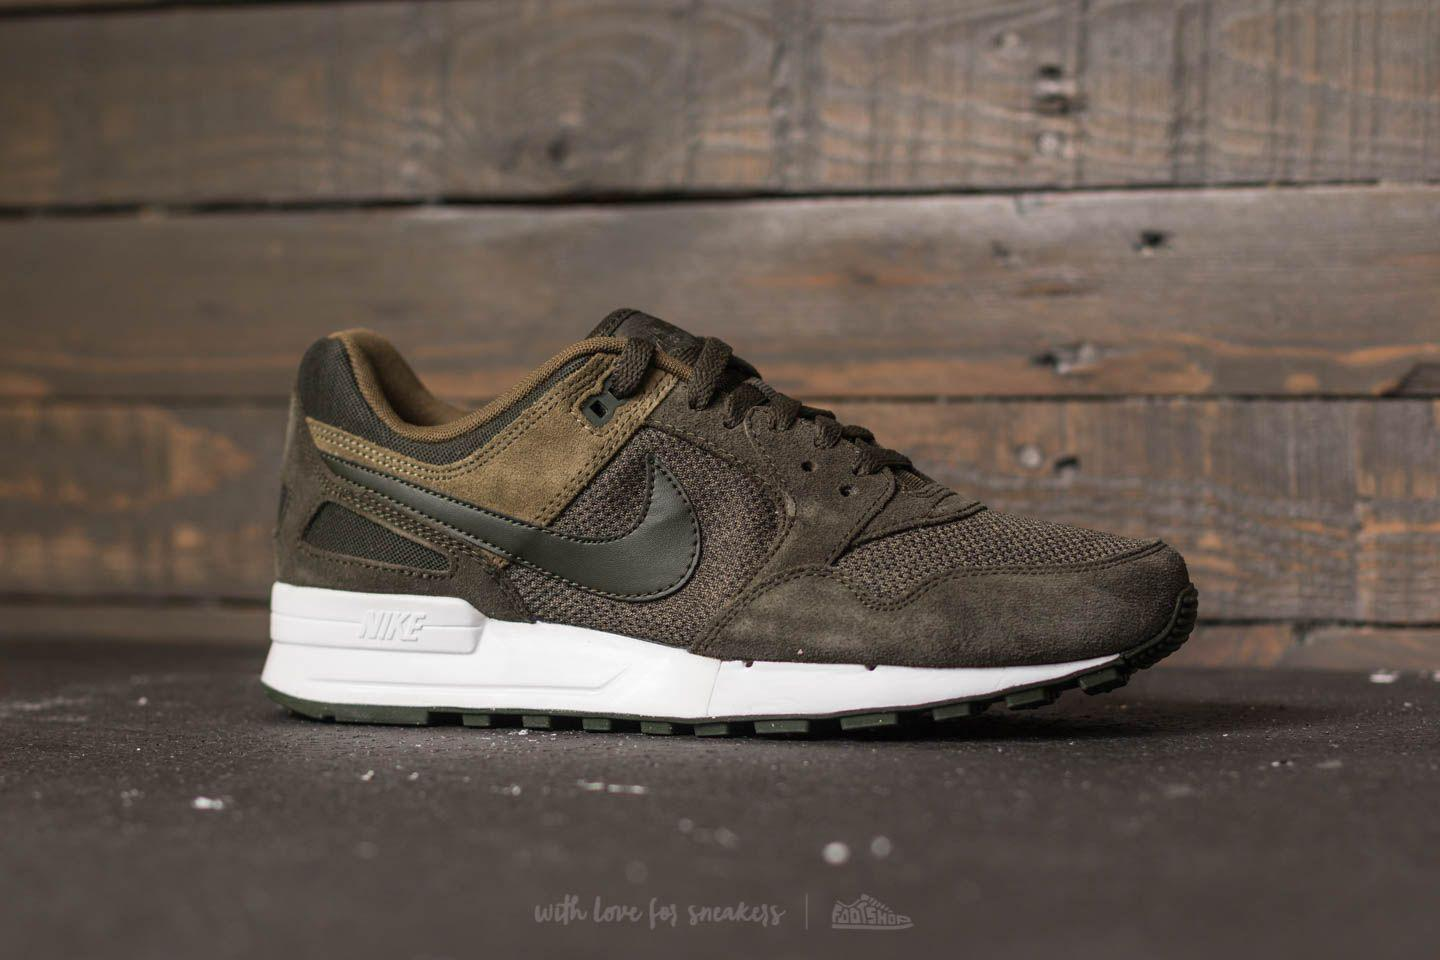 cc847be64b2f0 switzerland nike air pegasus 89 army green white shoes b9b59 4d91f; best  price lyst nike air pegasus 89 sequoia sequoia cargo khaki for men f4087  e9f3a